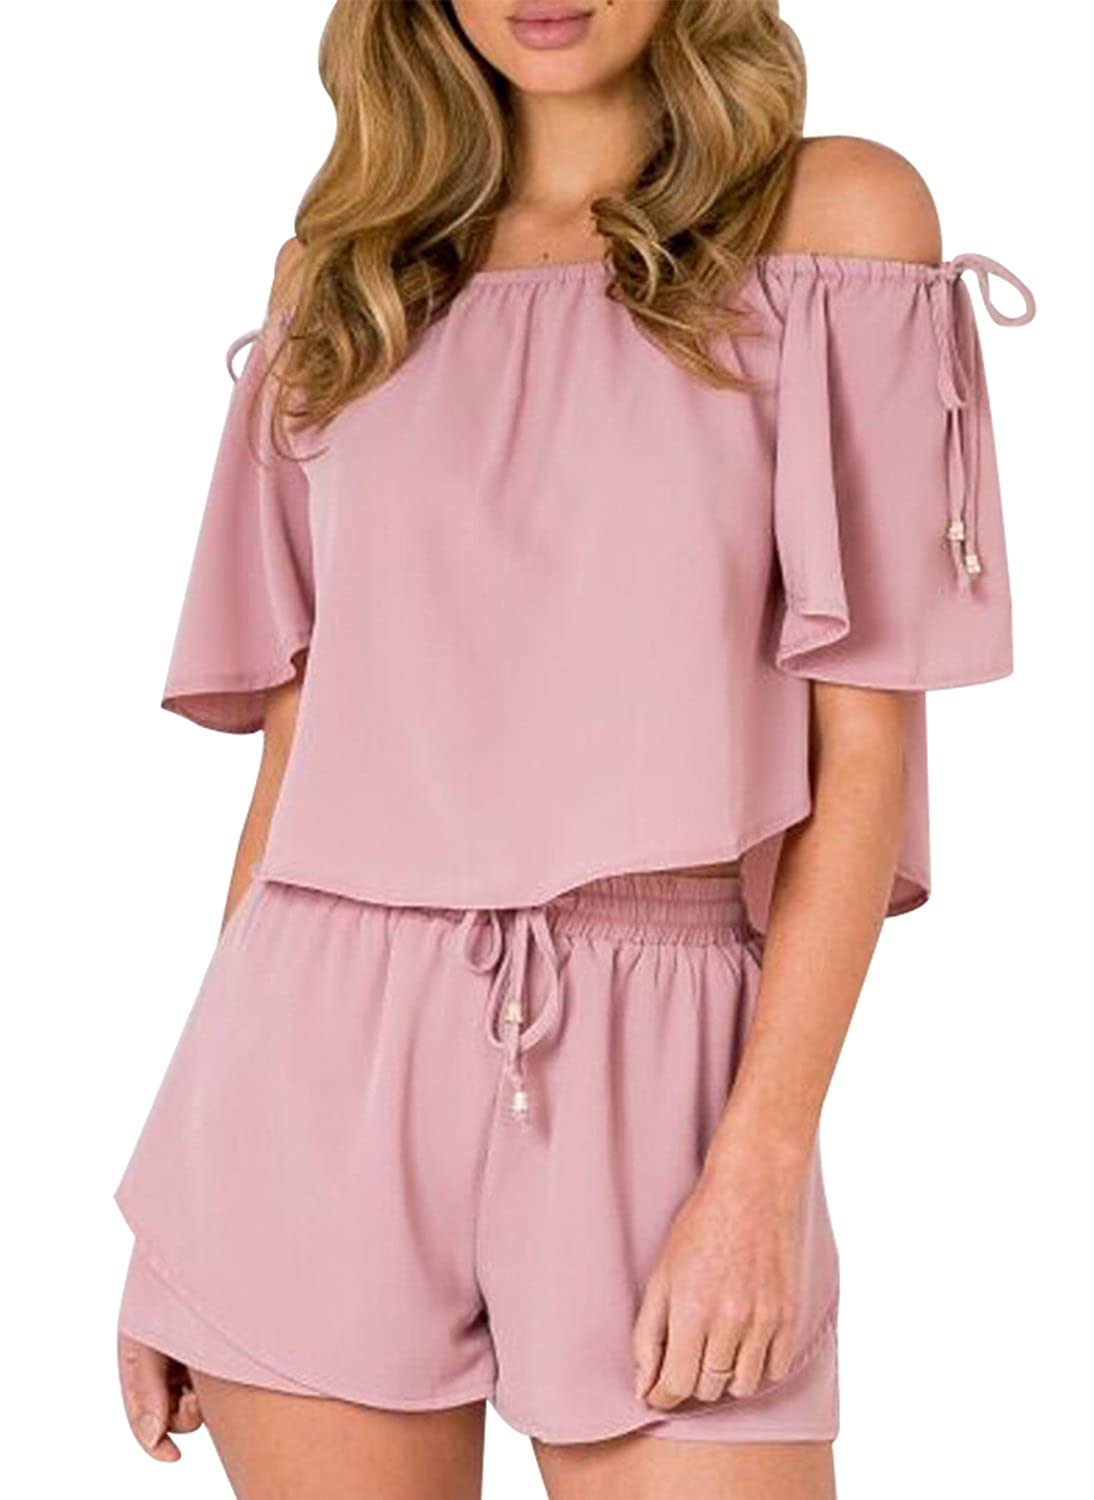 a3cbcda38a0 S US 2-4 M US 6 L US 8 XL US 10-12. The cute two pieces rompers is made of  high quality of cotton blend.Soft and breathable